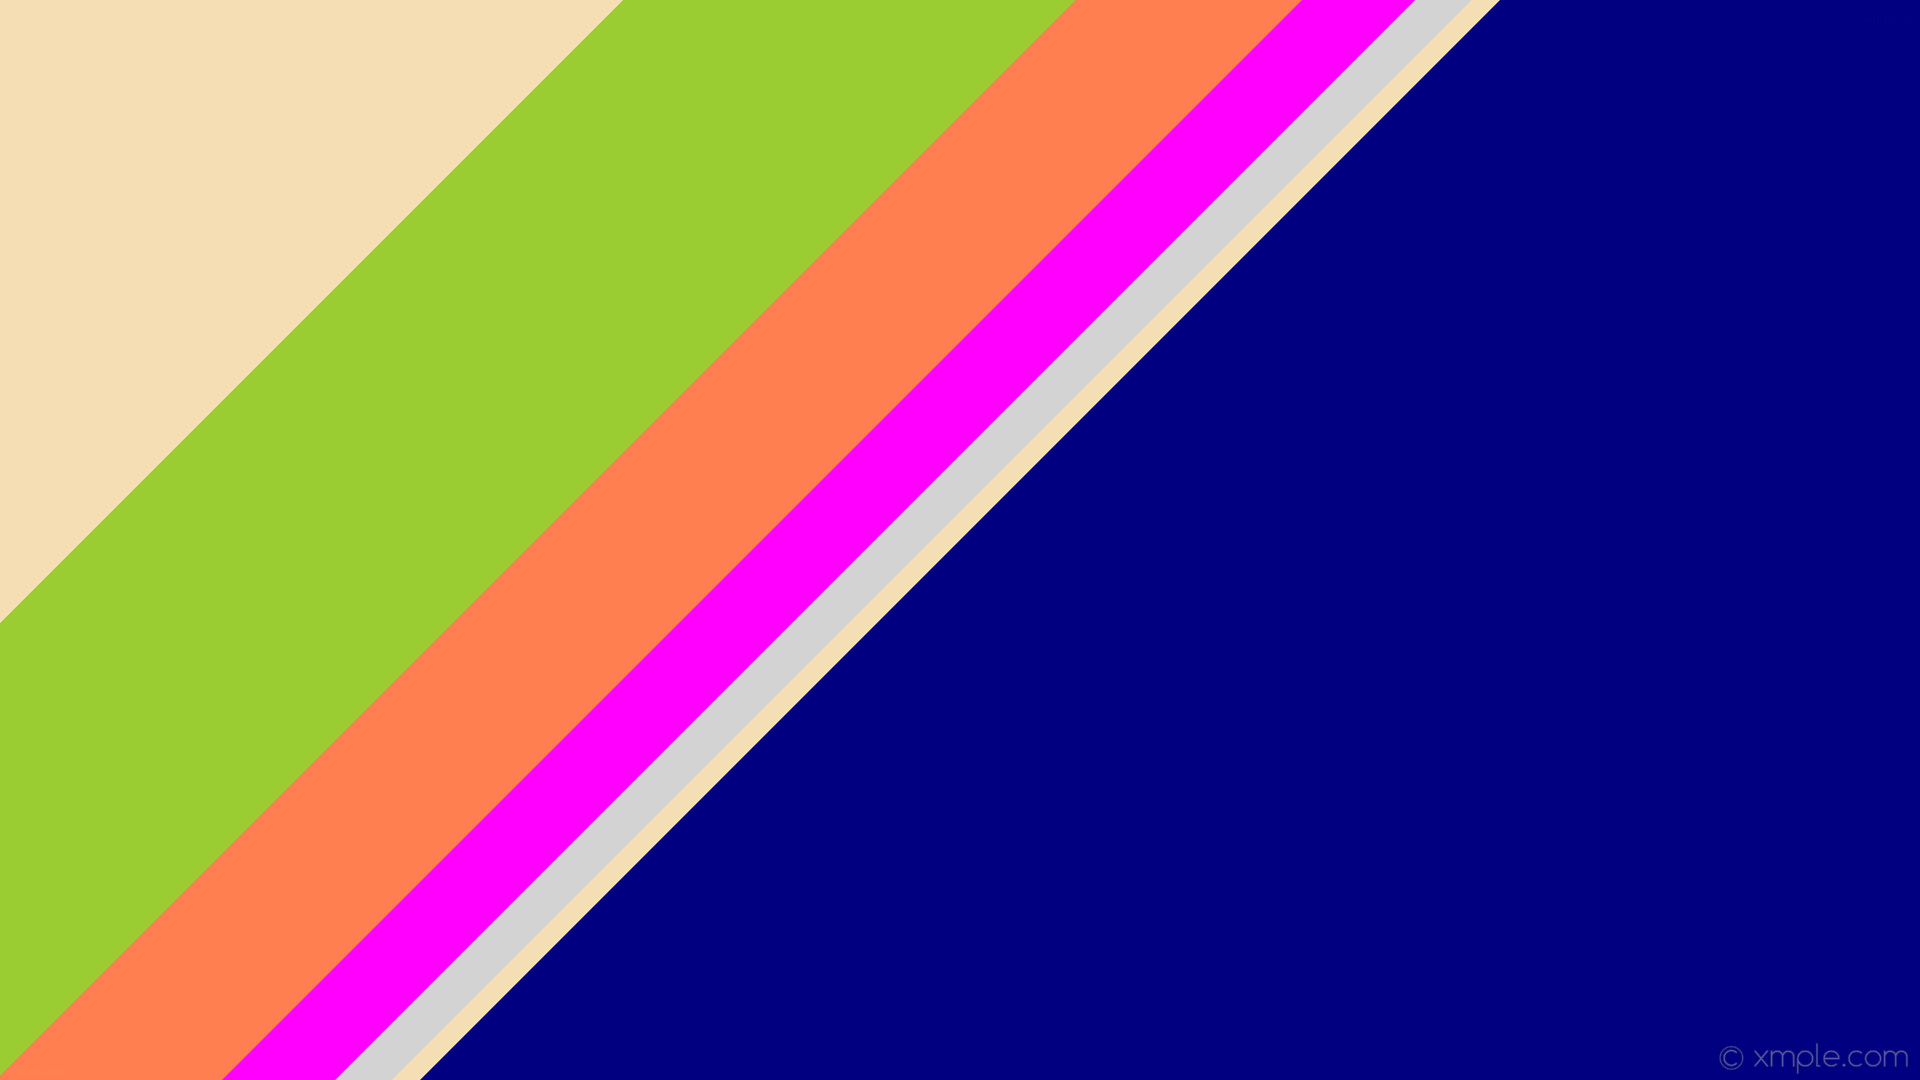 1920x1080 wallpaper blue grey green stripes purple lines streaks brown orange wheat  light gray magenta coral yellow